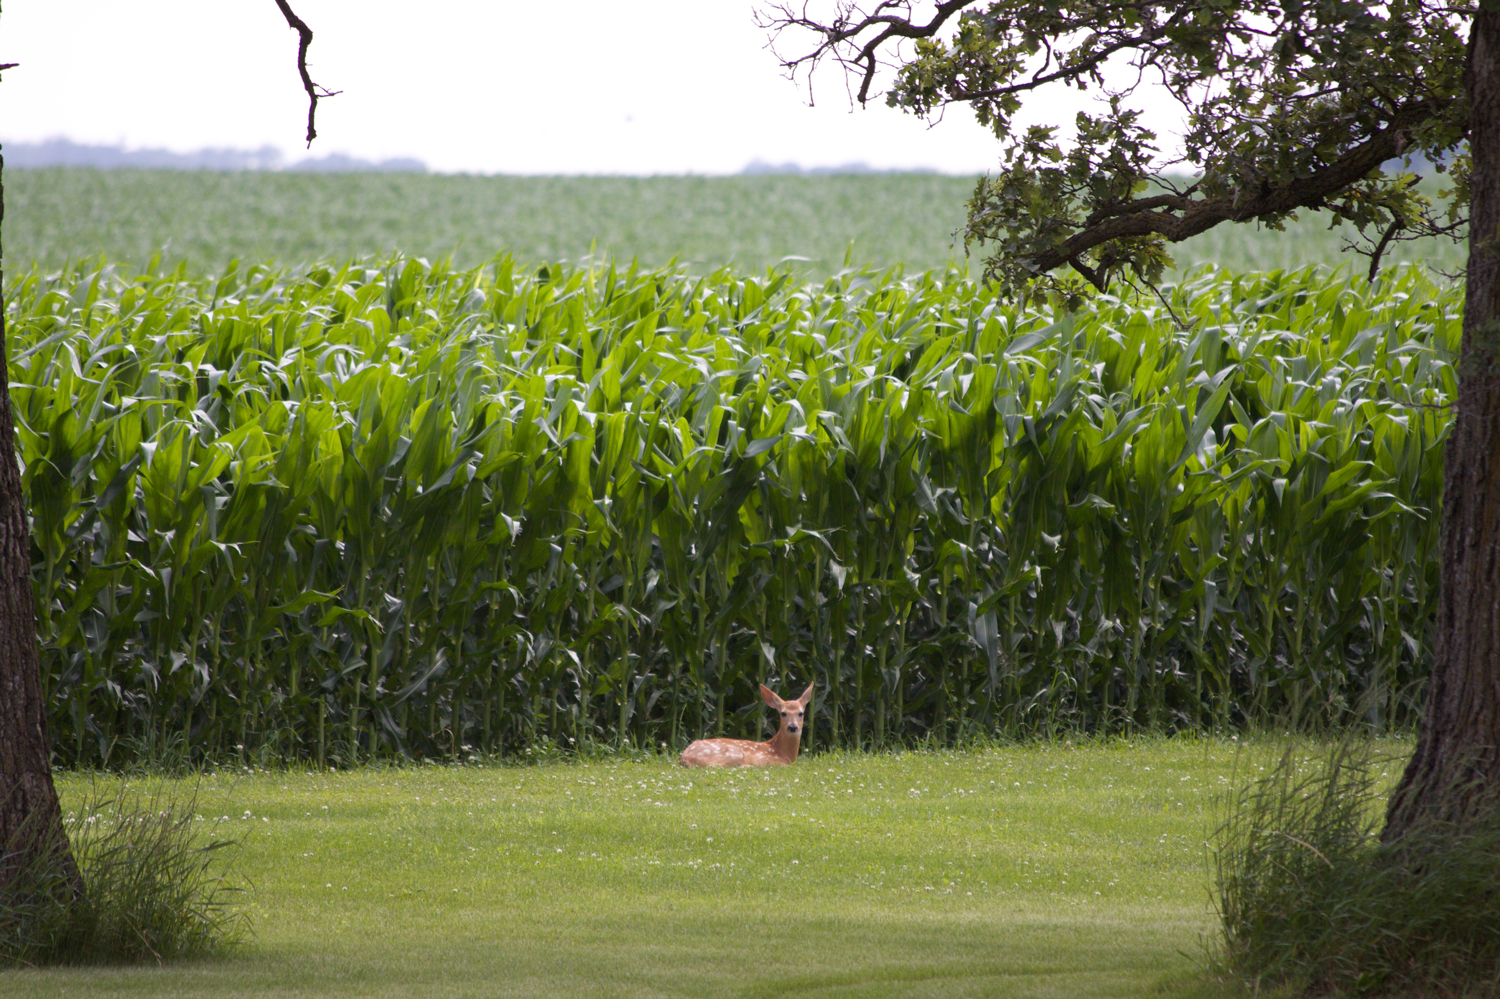 Deer near Corn